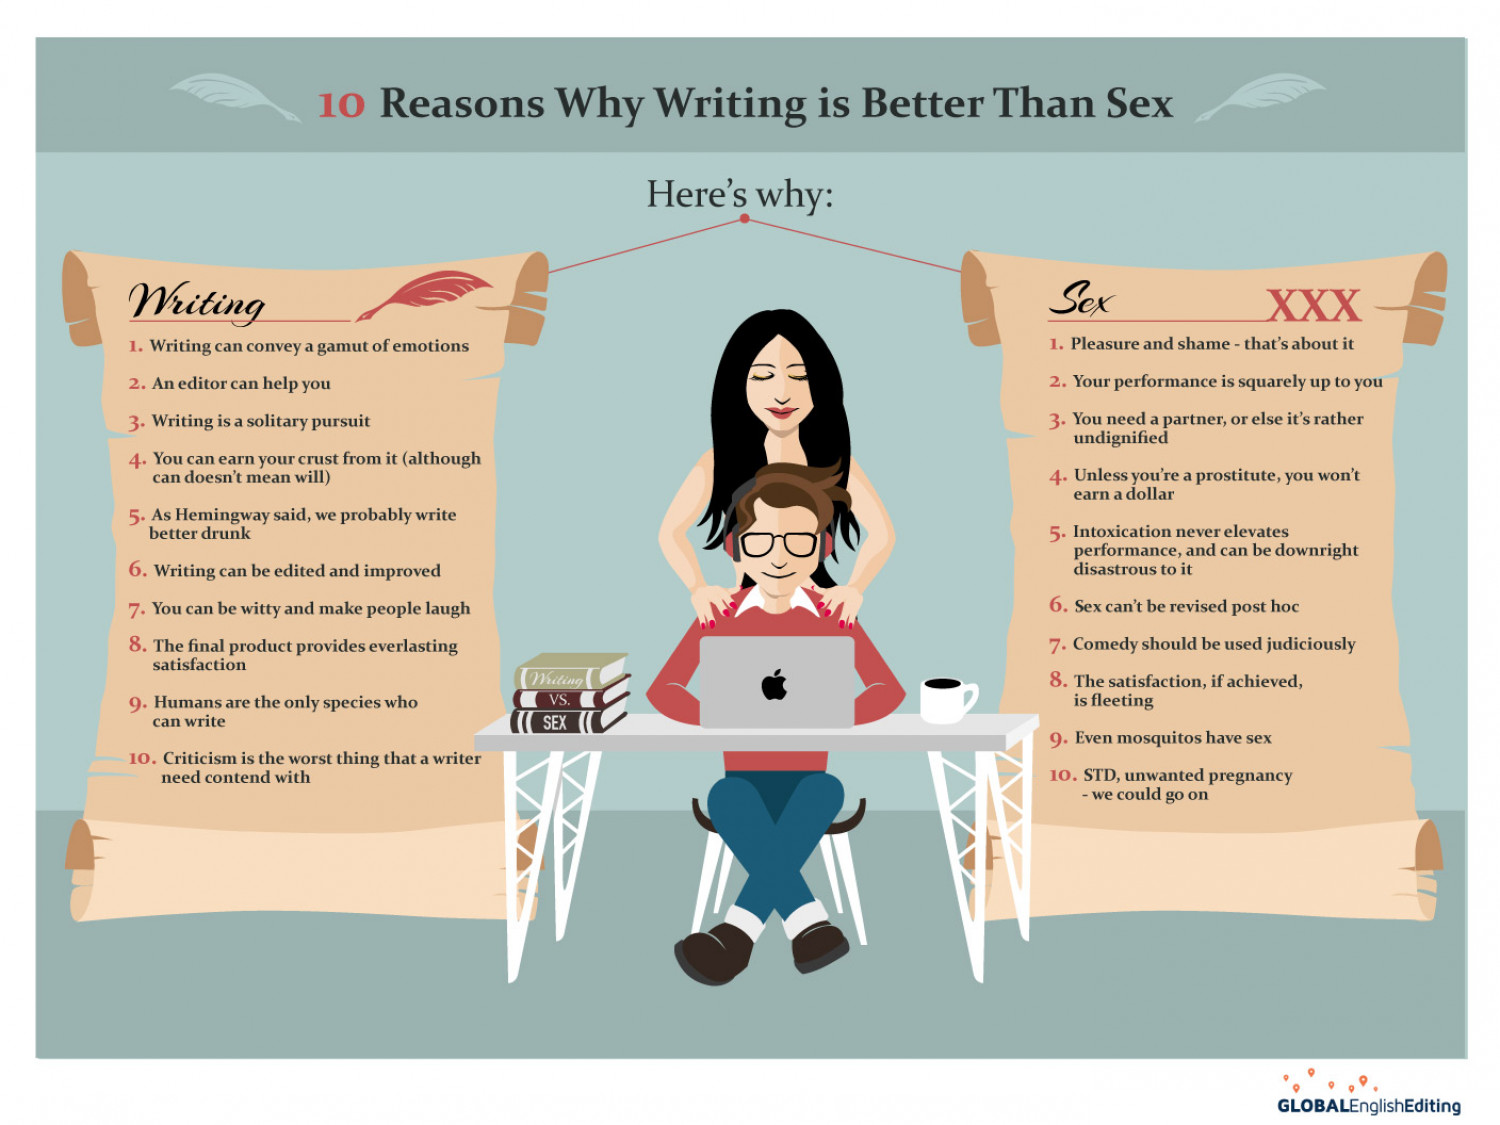 Why Writing is Better Than Sex Infographic